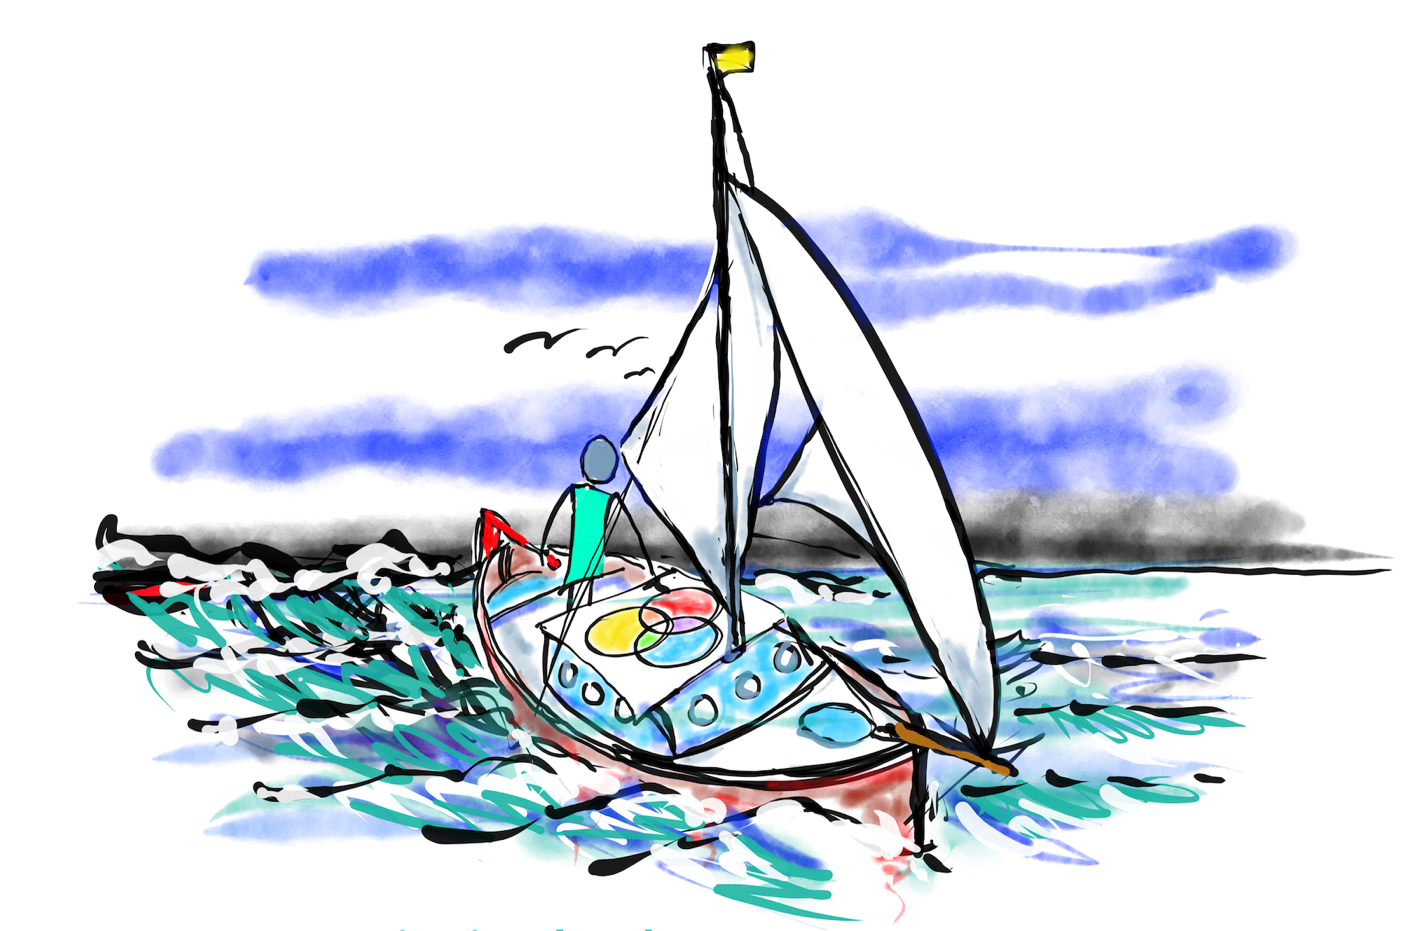 A hand drawn image of a person on a sailboat in the ocean, looking at the Dread, Dreams and Delight Venn diagram.